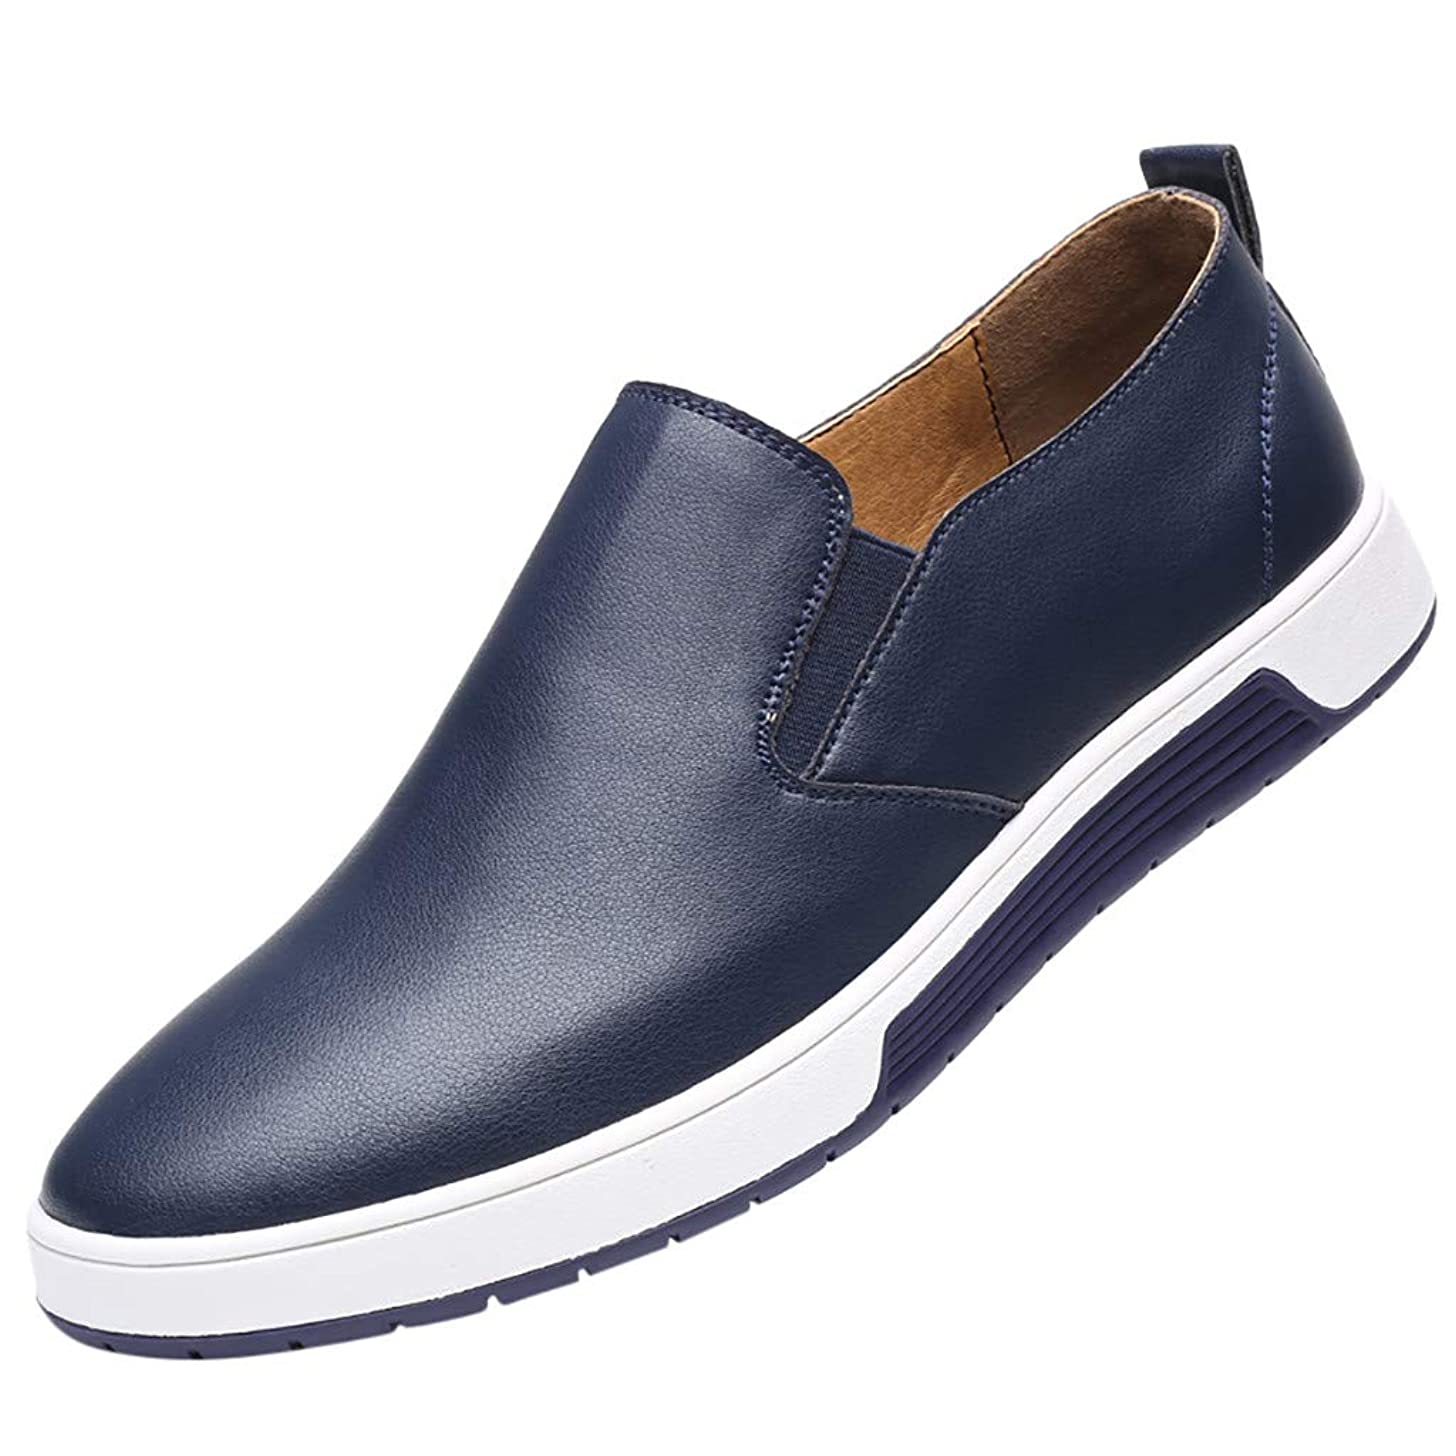 Male Shoe Clearance, Men Fashion Breathable Business Shoes Leather Shoes Easy Wash Round Toe Slip-On Casual Lazy Shoes lkoezi